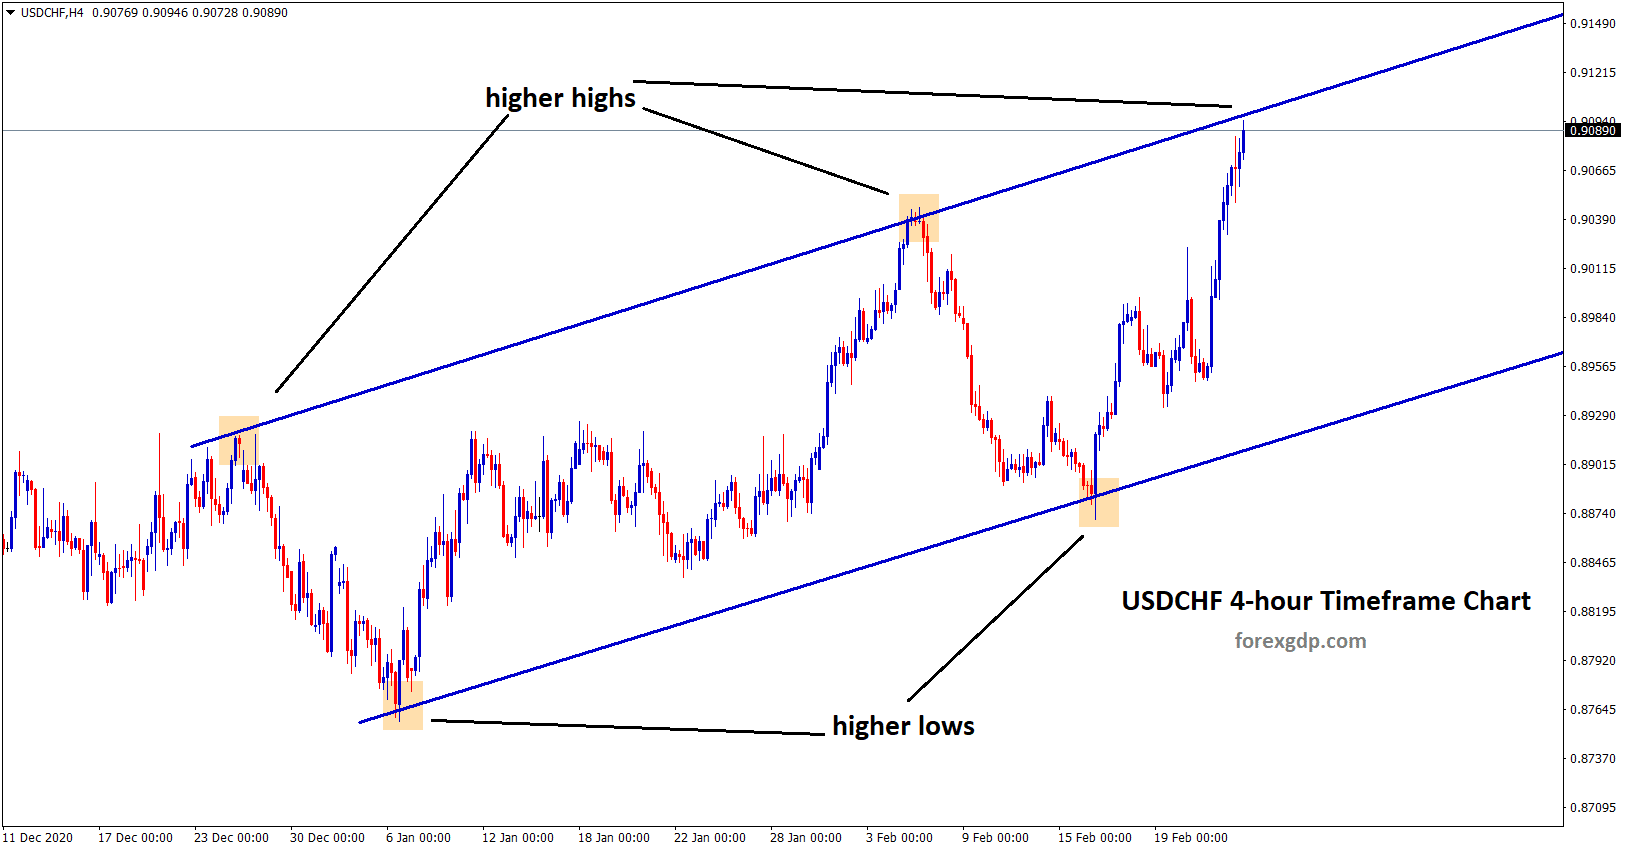 usdchf at the higher high zone in 4hr